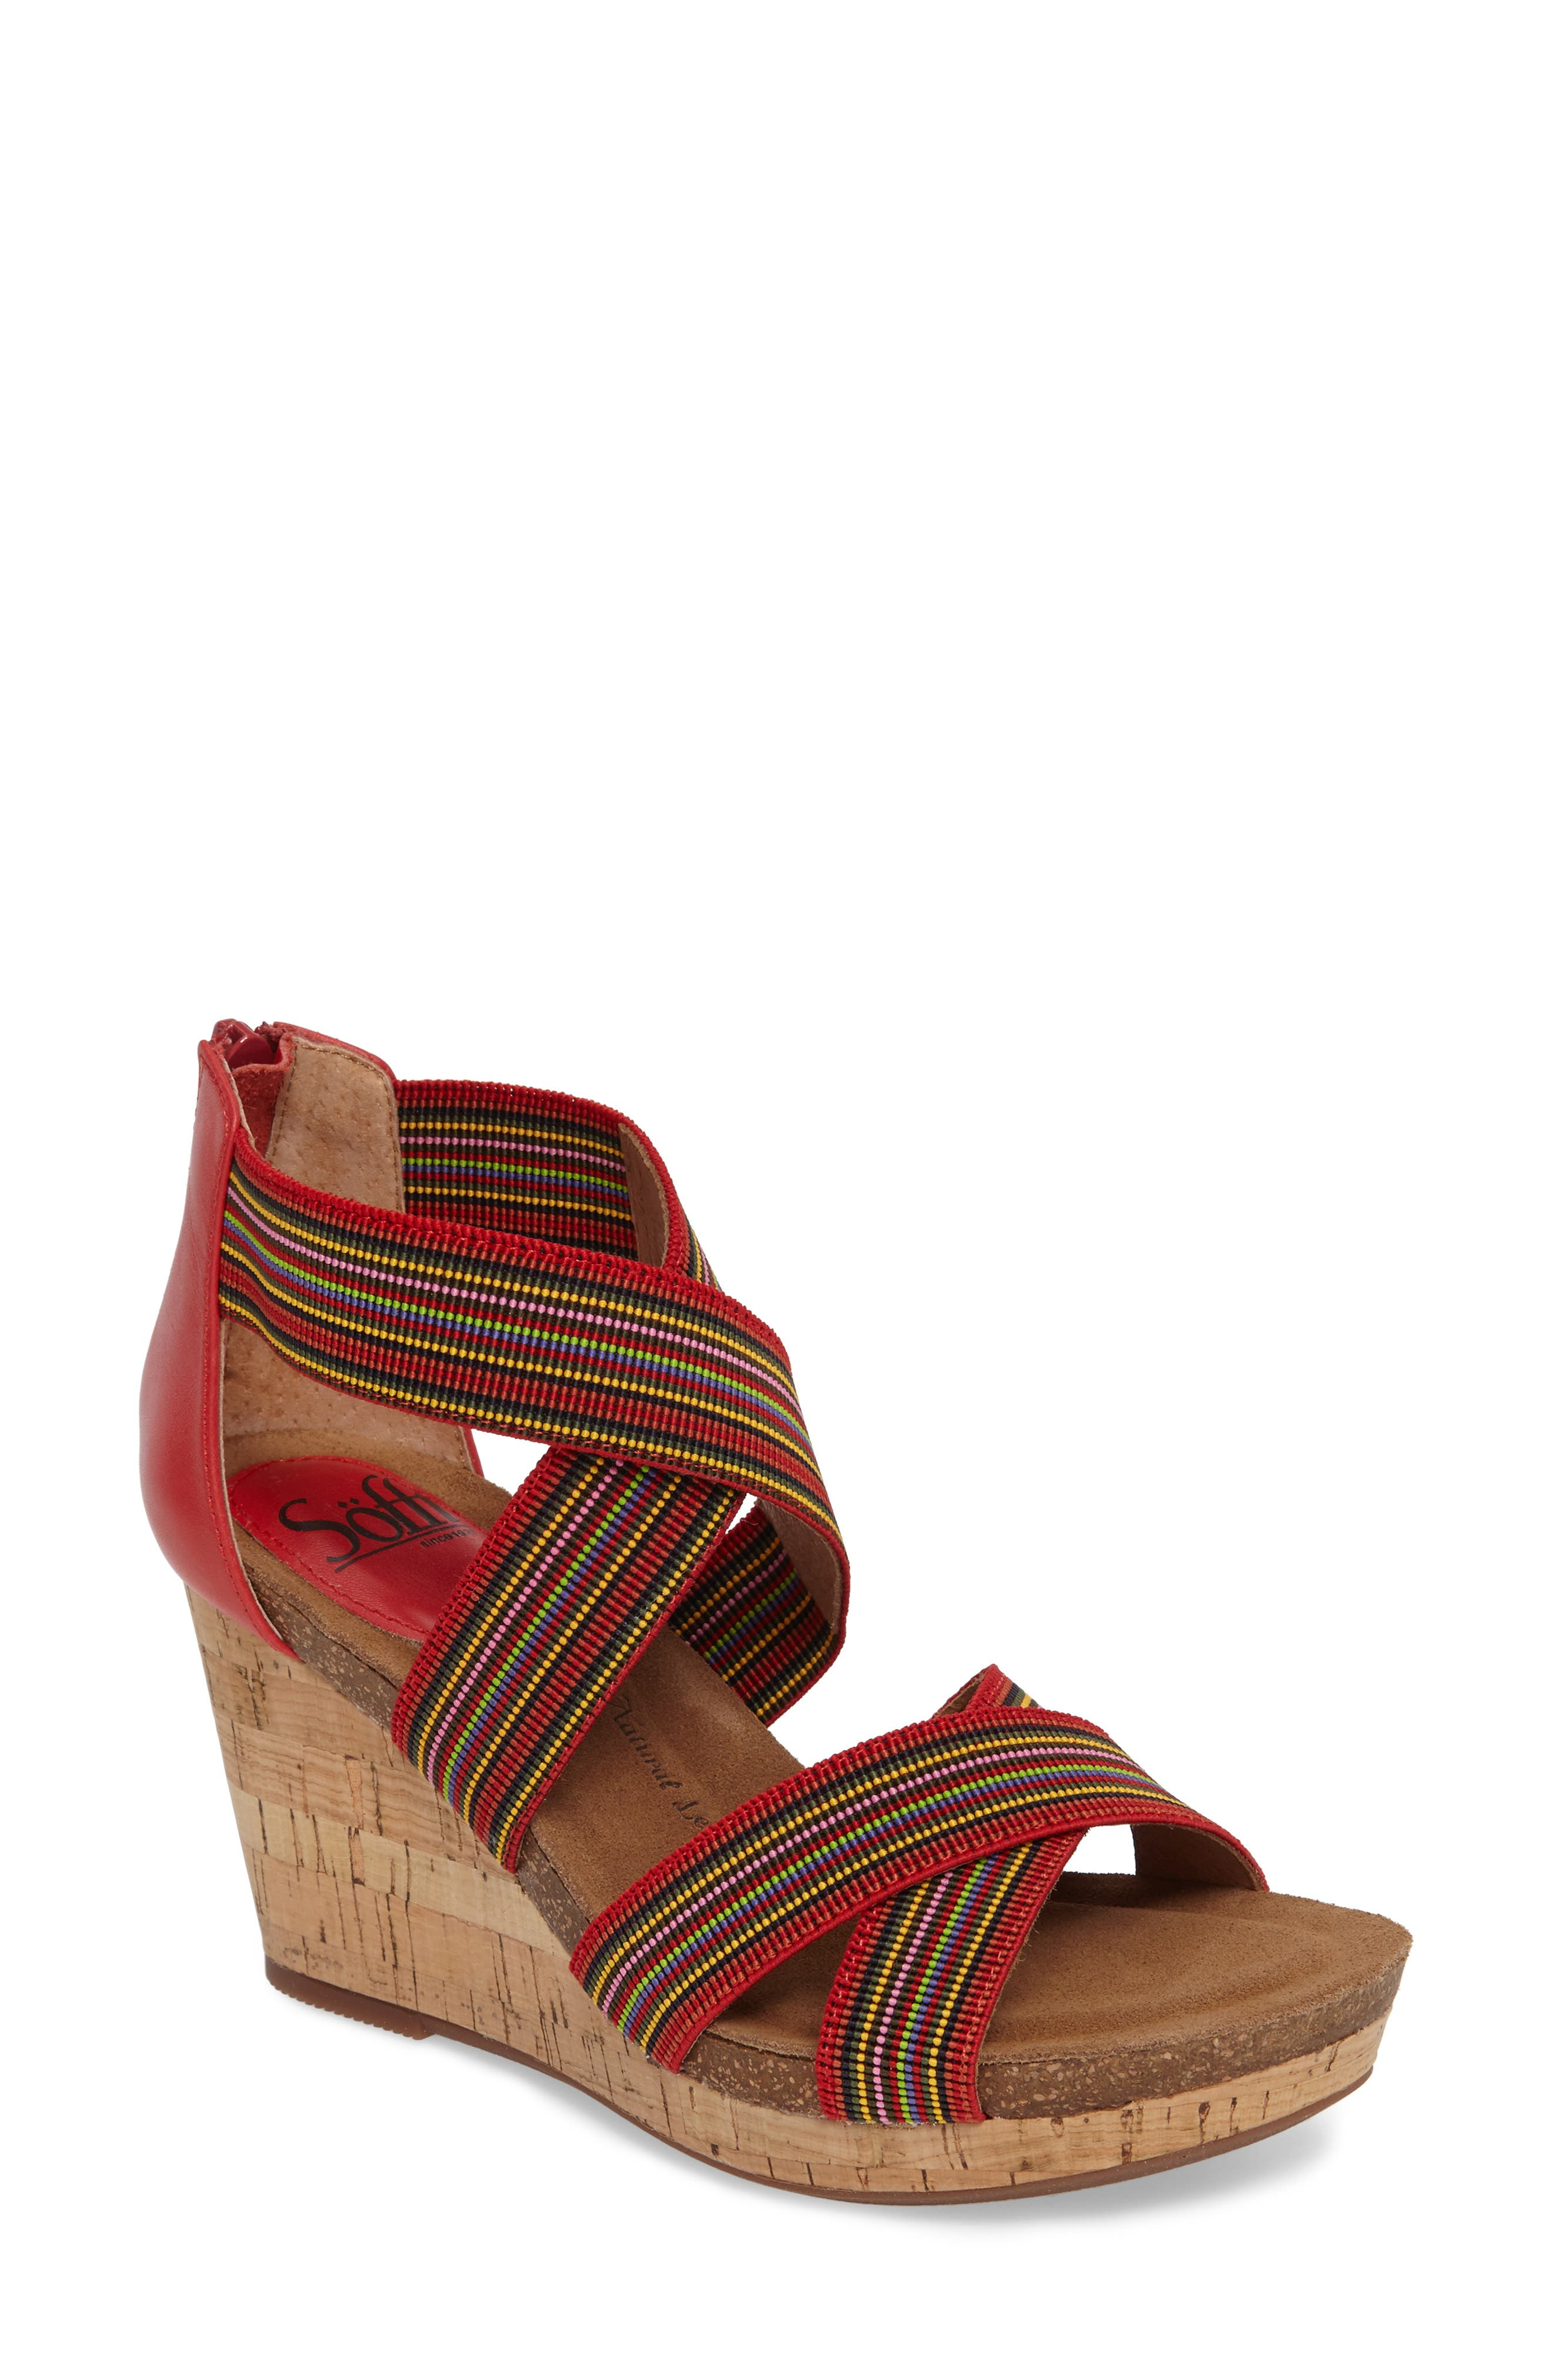 Cary Cross Strap Wedge Sandal,                             Main thumbnail 3, color,